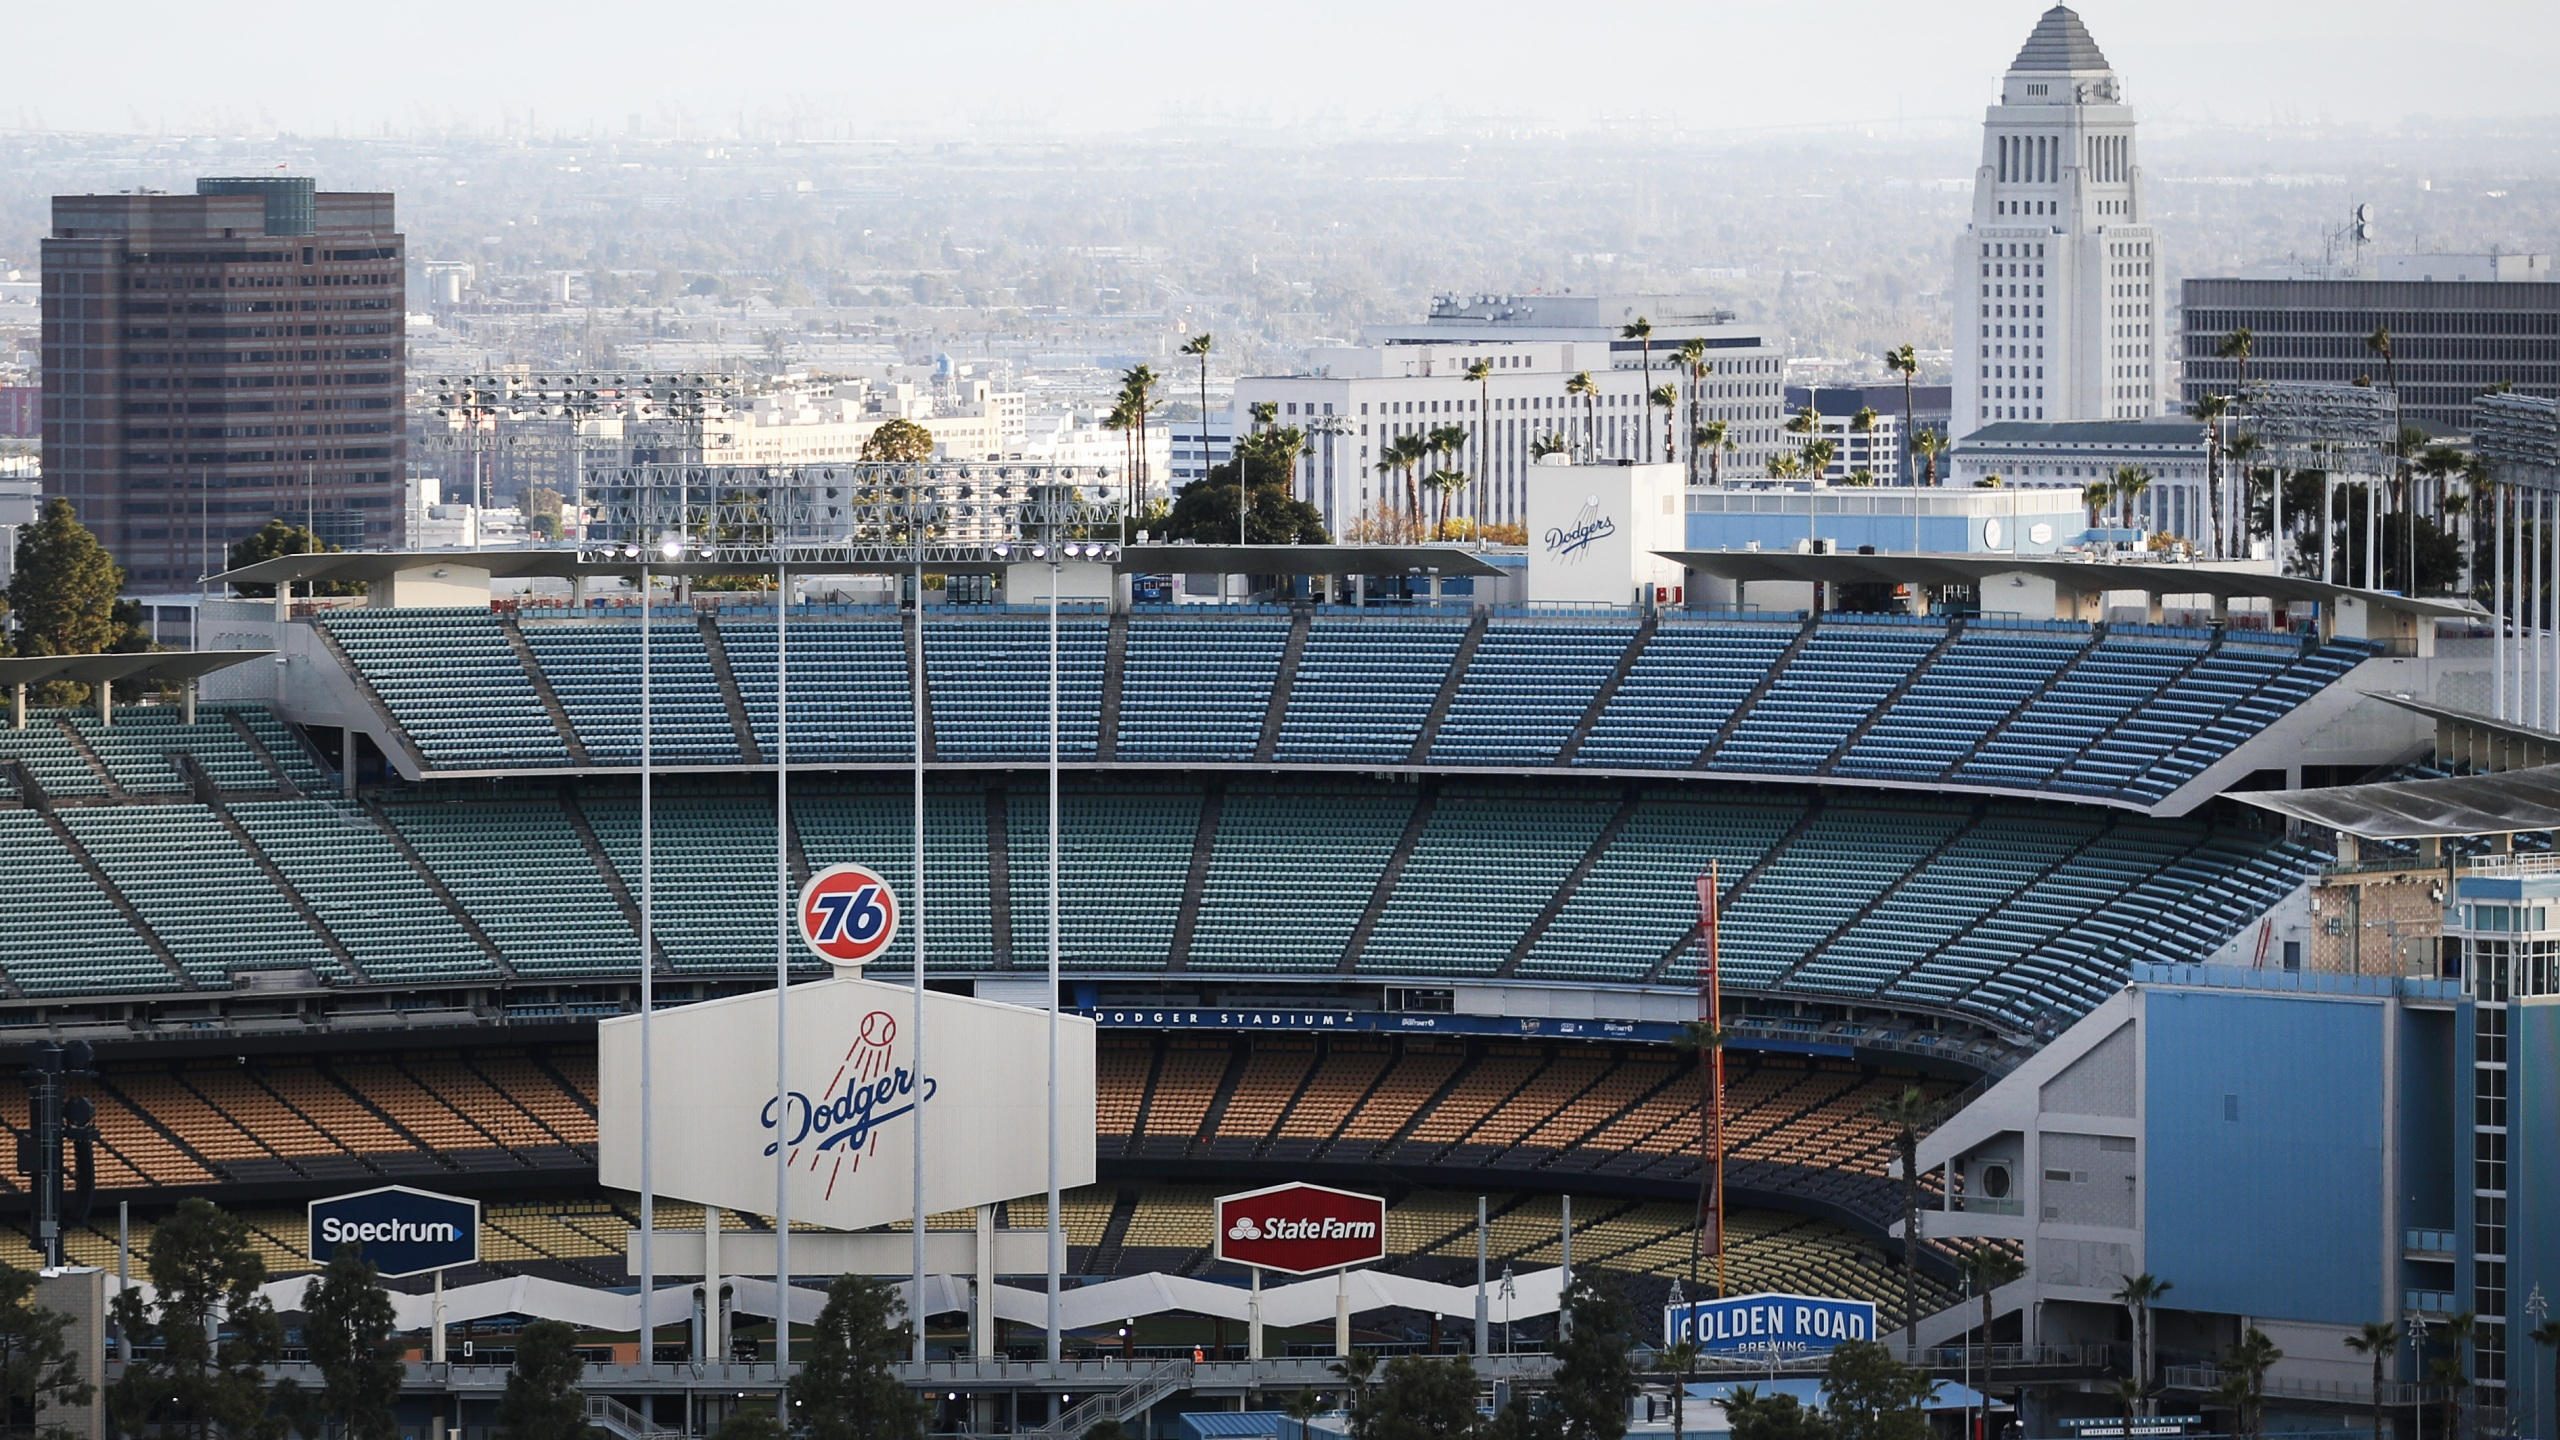 Dodger Stadium is viewed on what was supposed to be opening day, postponed due to the coronavirus, on March 26, 2020. (Mario Tama / Getty Images)